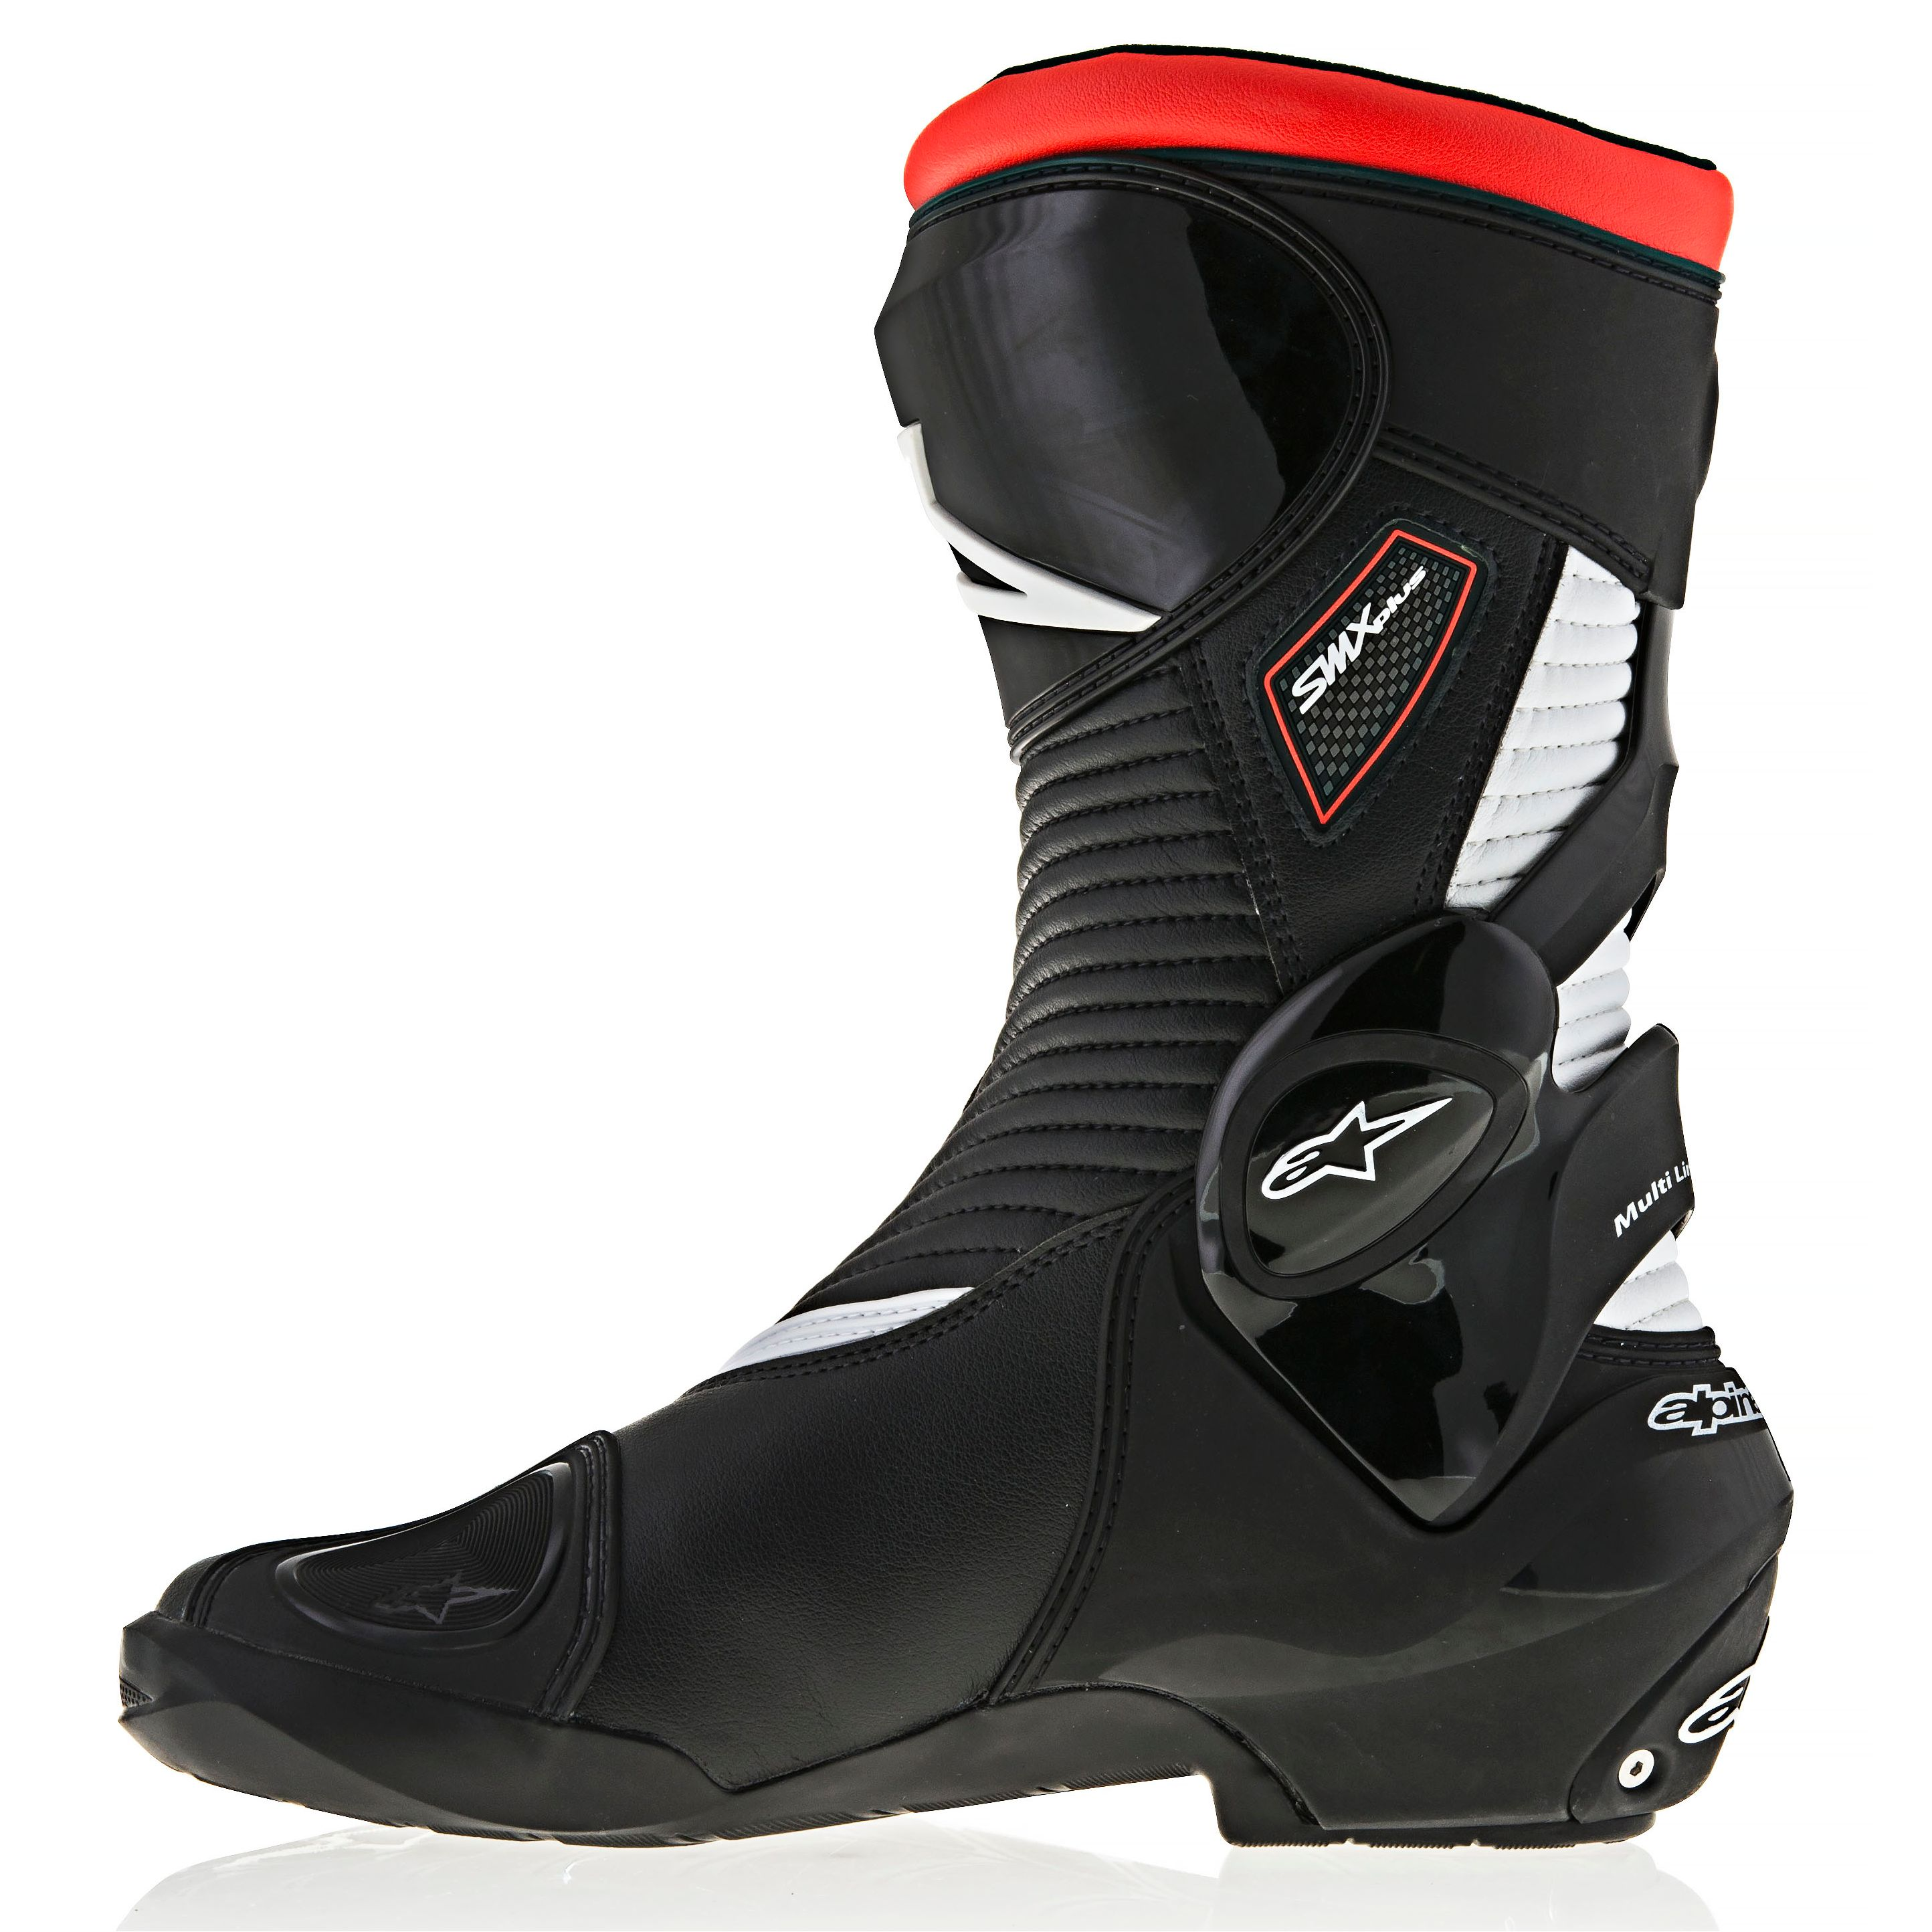 bottes alpinestars smx plus equipement du pilote access. Black Bedroom Furniture Sets. Home Design Ideas